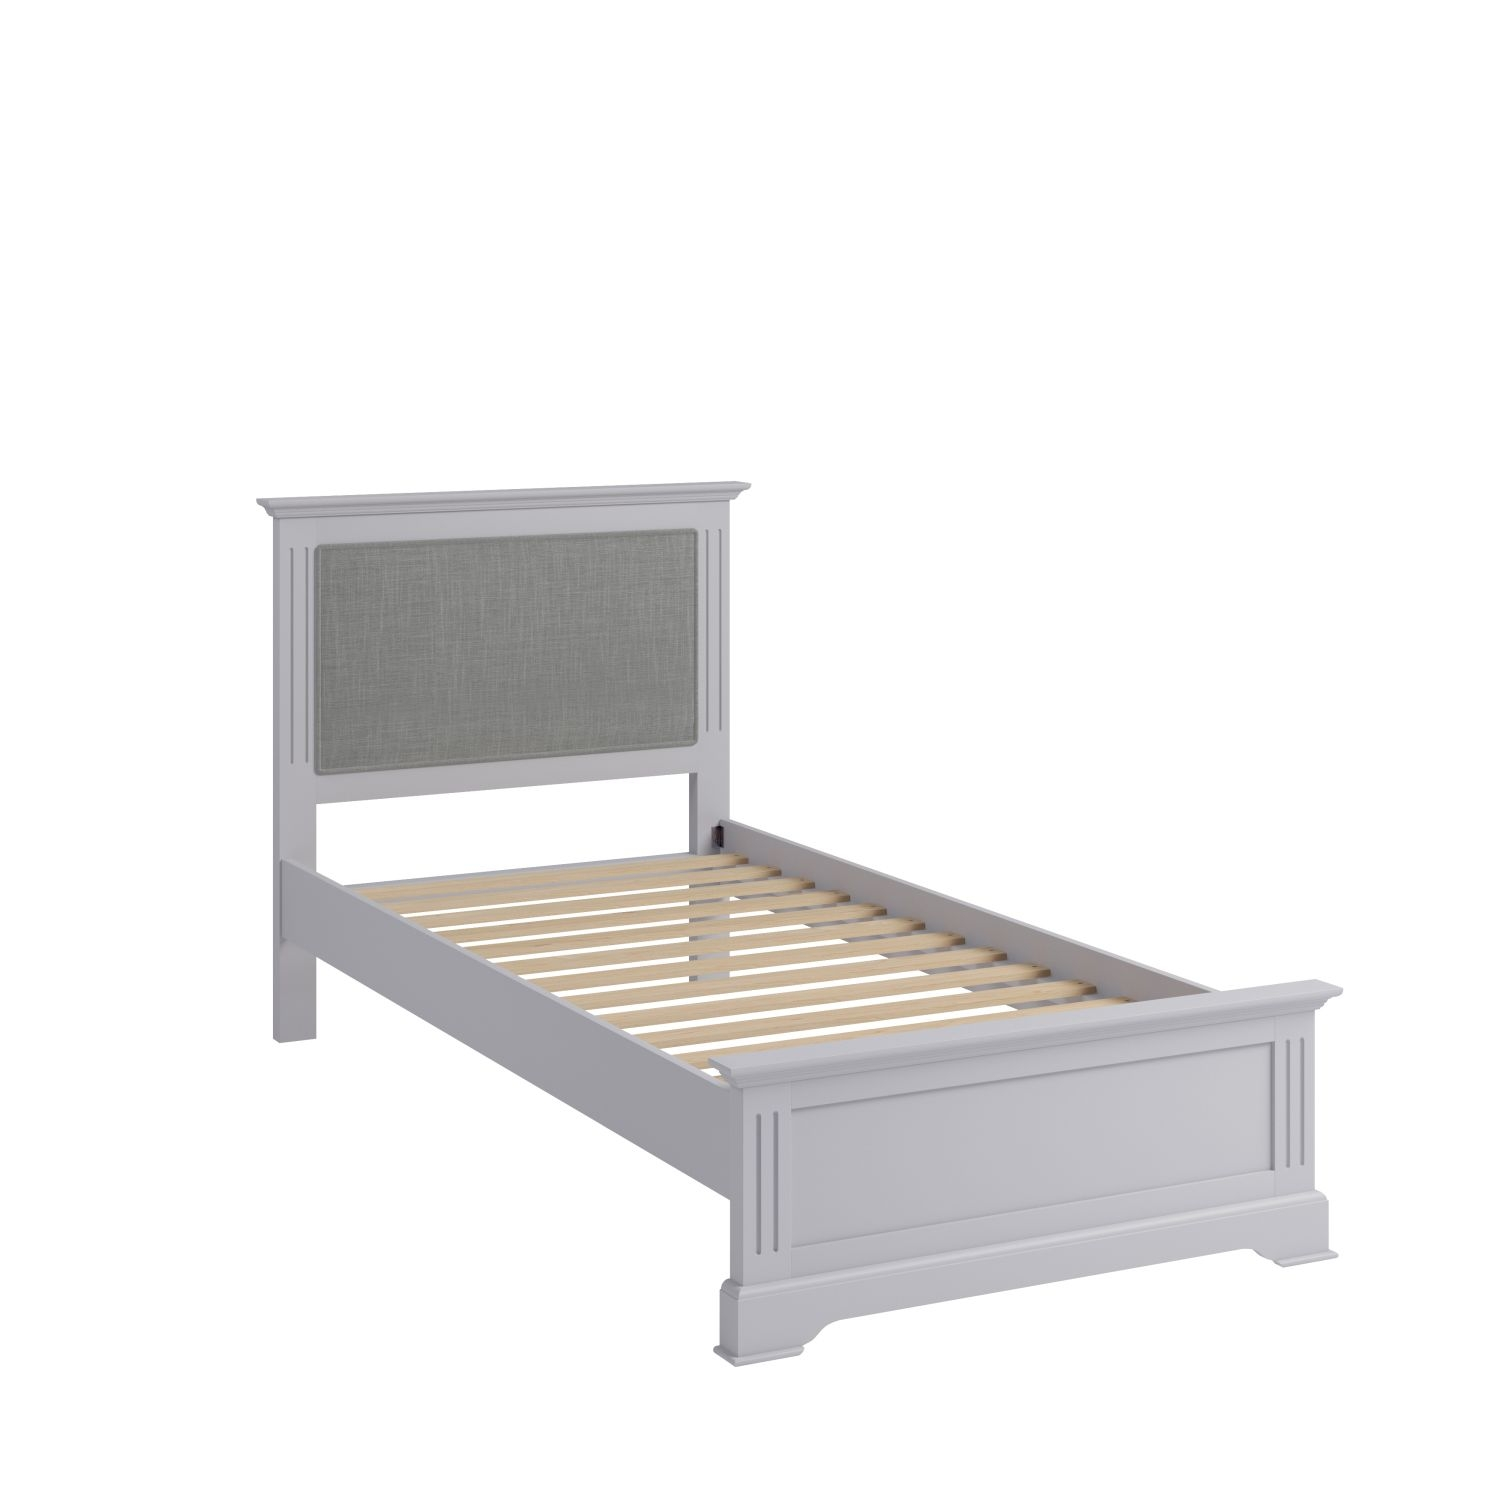 Image of Casa Dover Bed Frame, Single